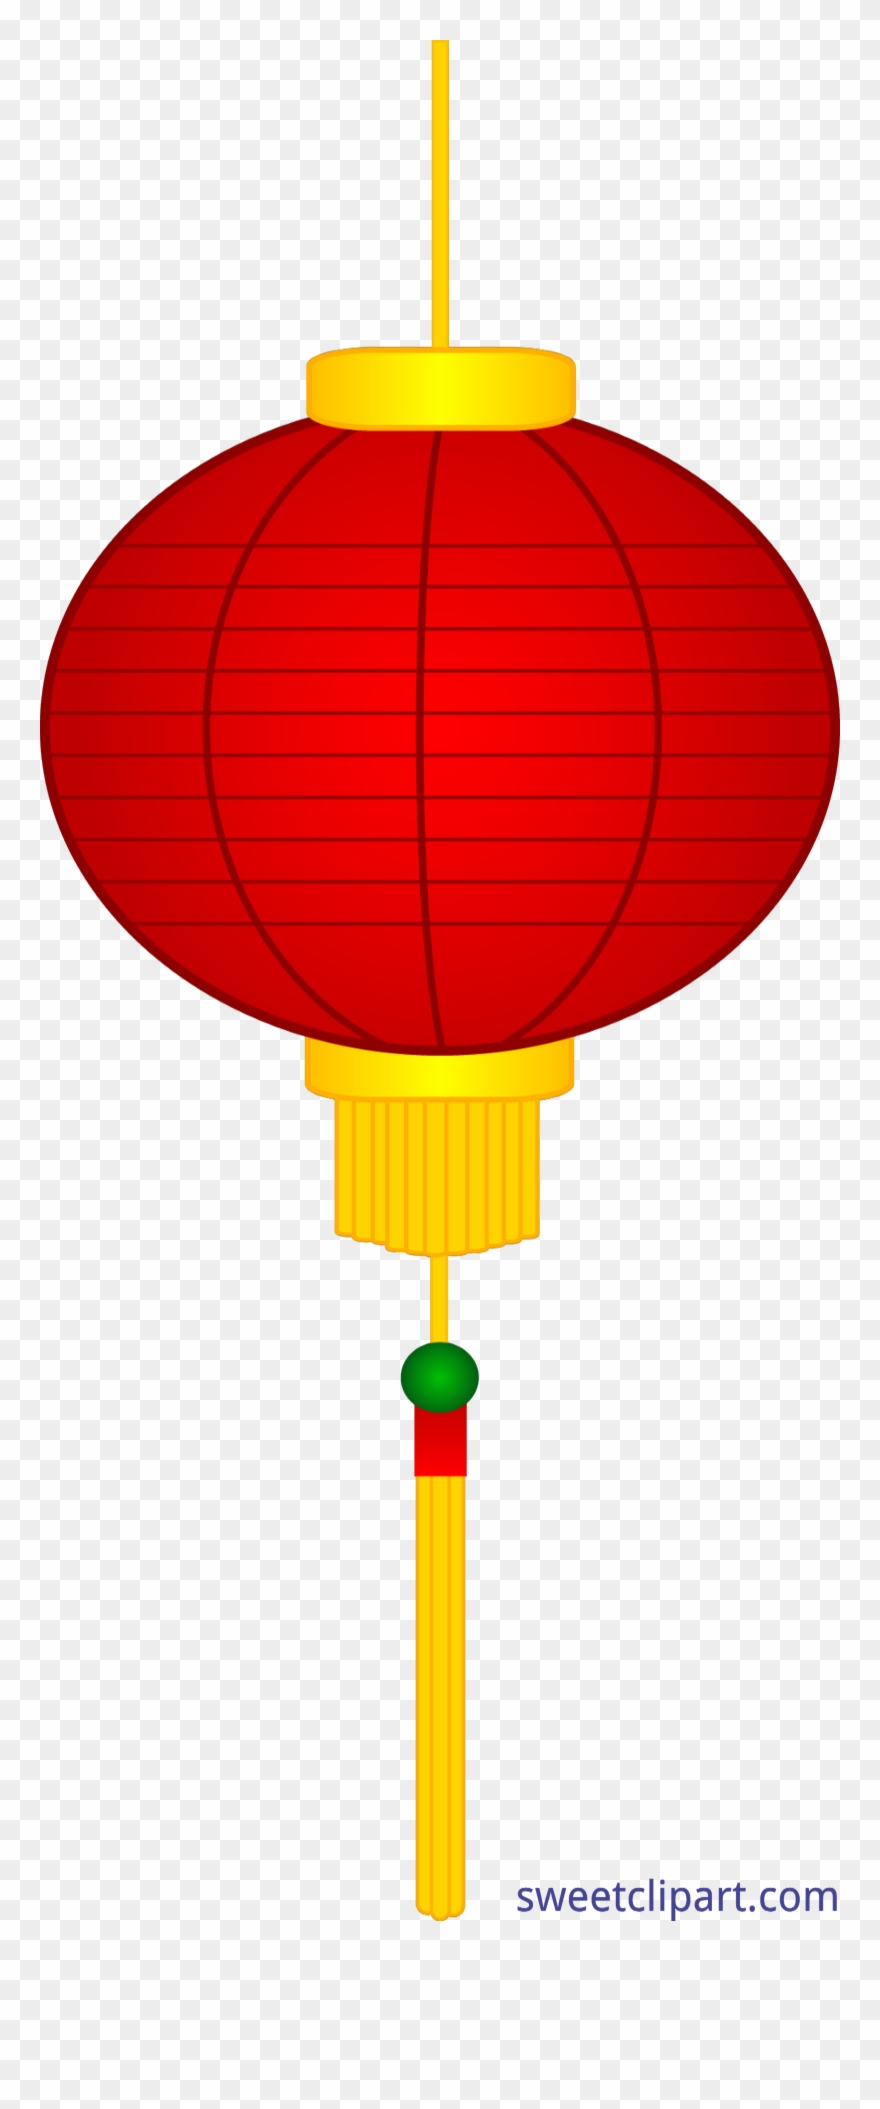 Chinese Lamps Chinese Lantern Clipart Lamps Free For.